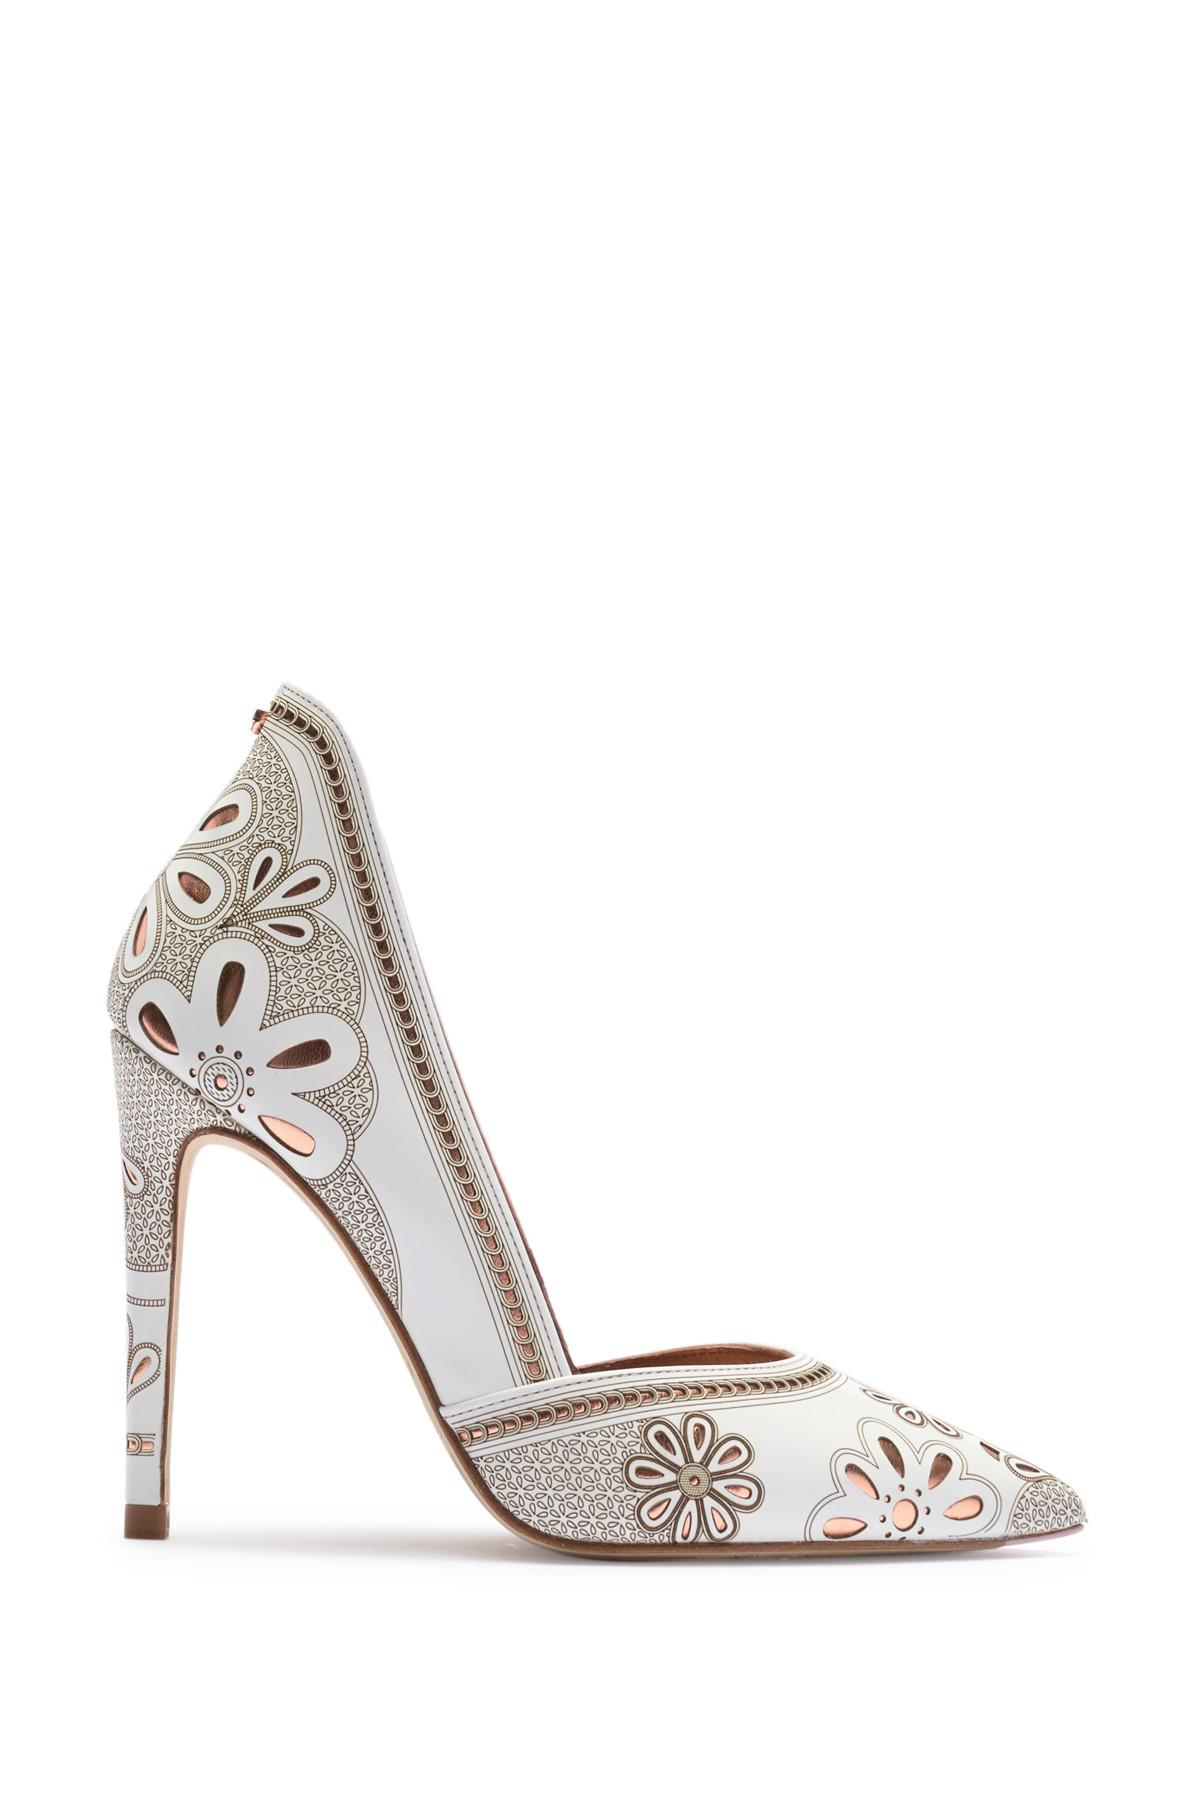 32b68b4f1be972 Lyst - Ted Baker Amahri Leather Stiletto Pump in White